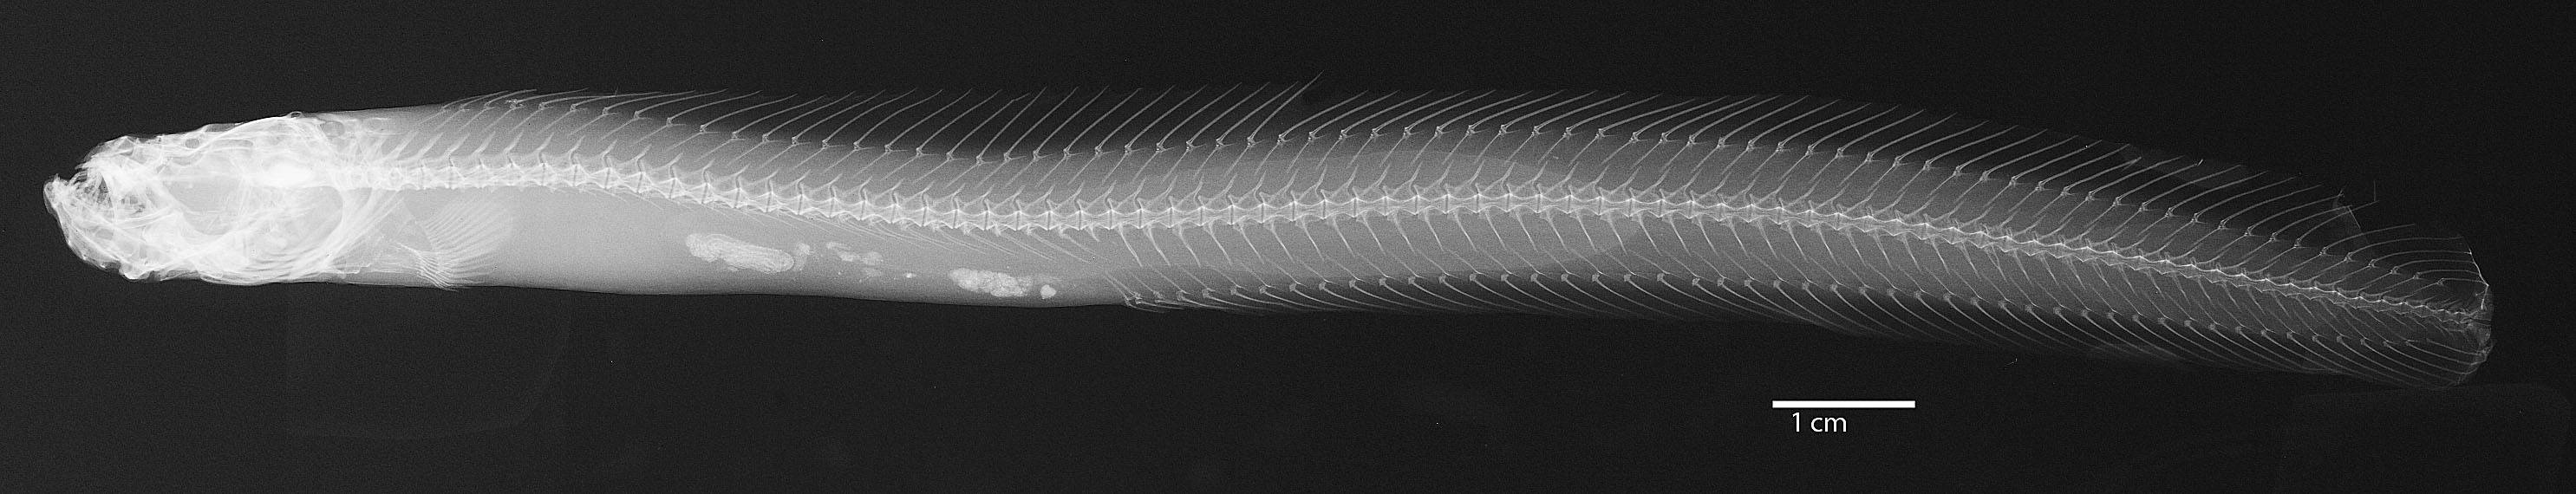 Image of dwarf wrymouth